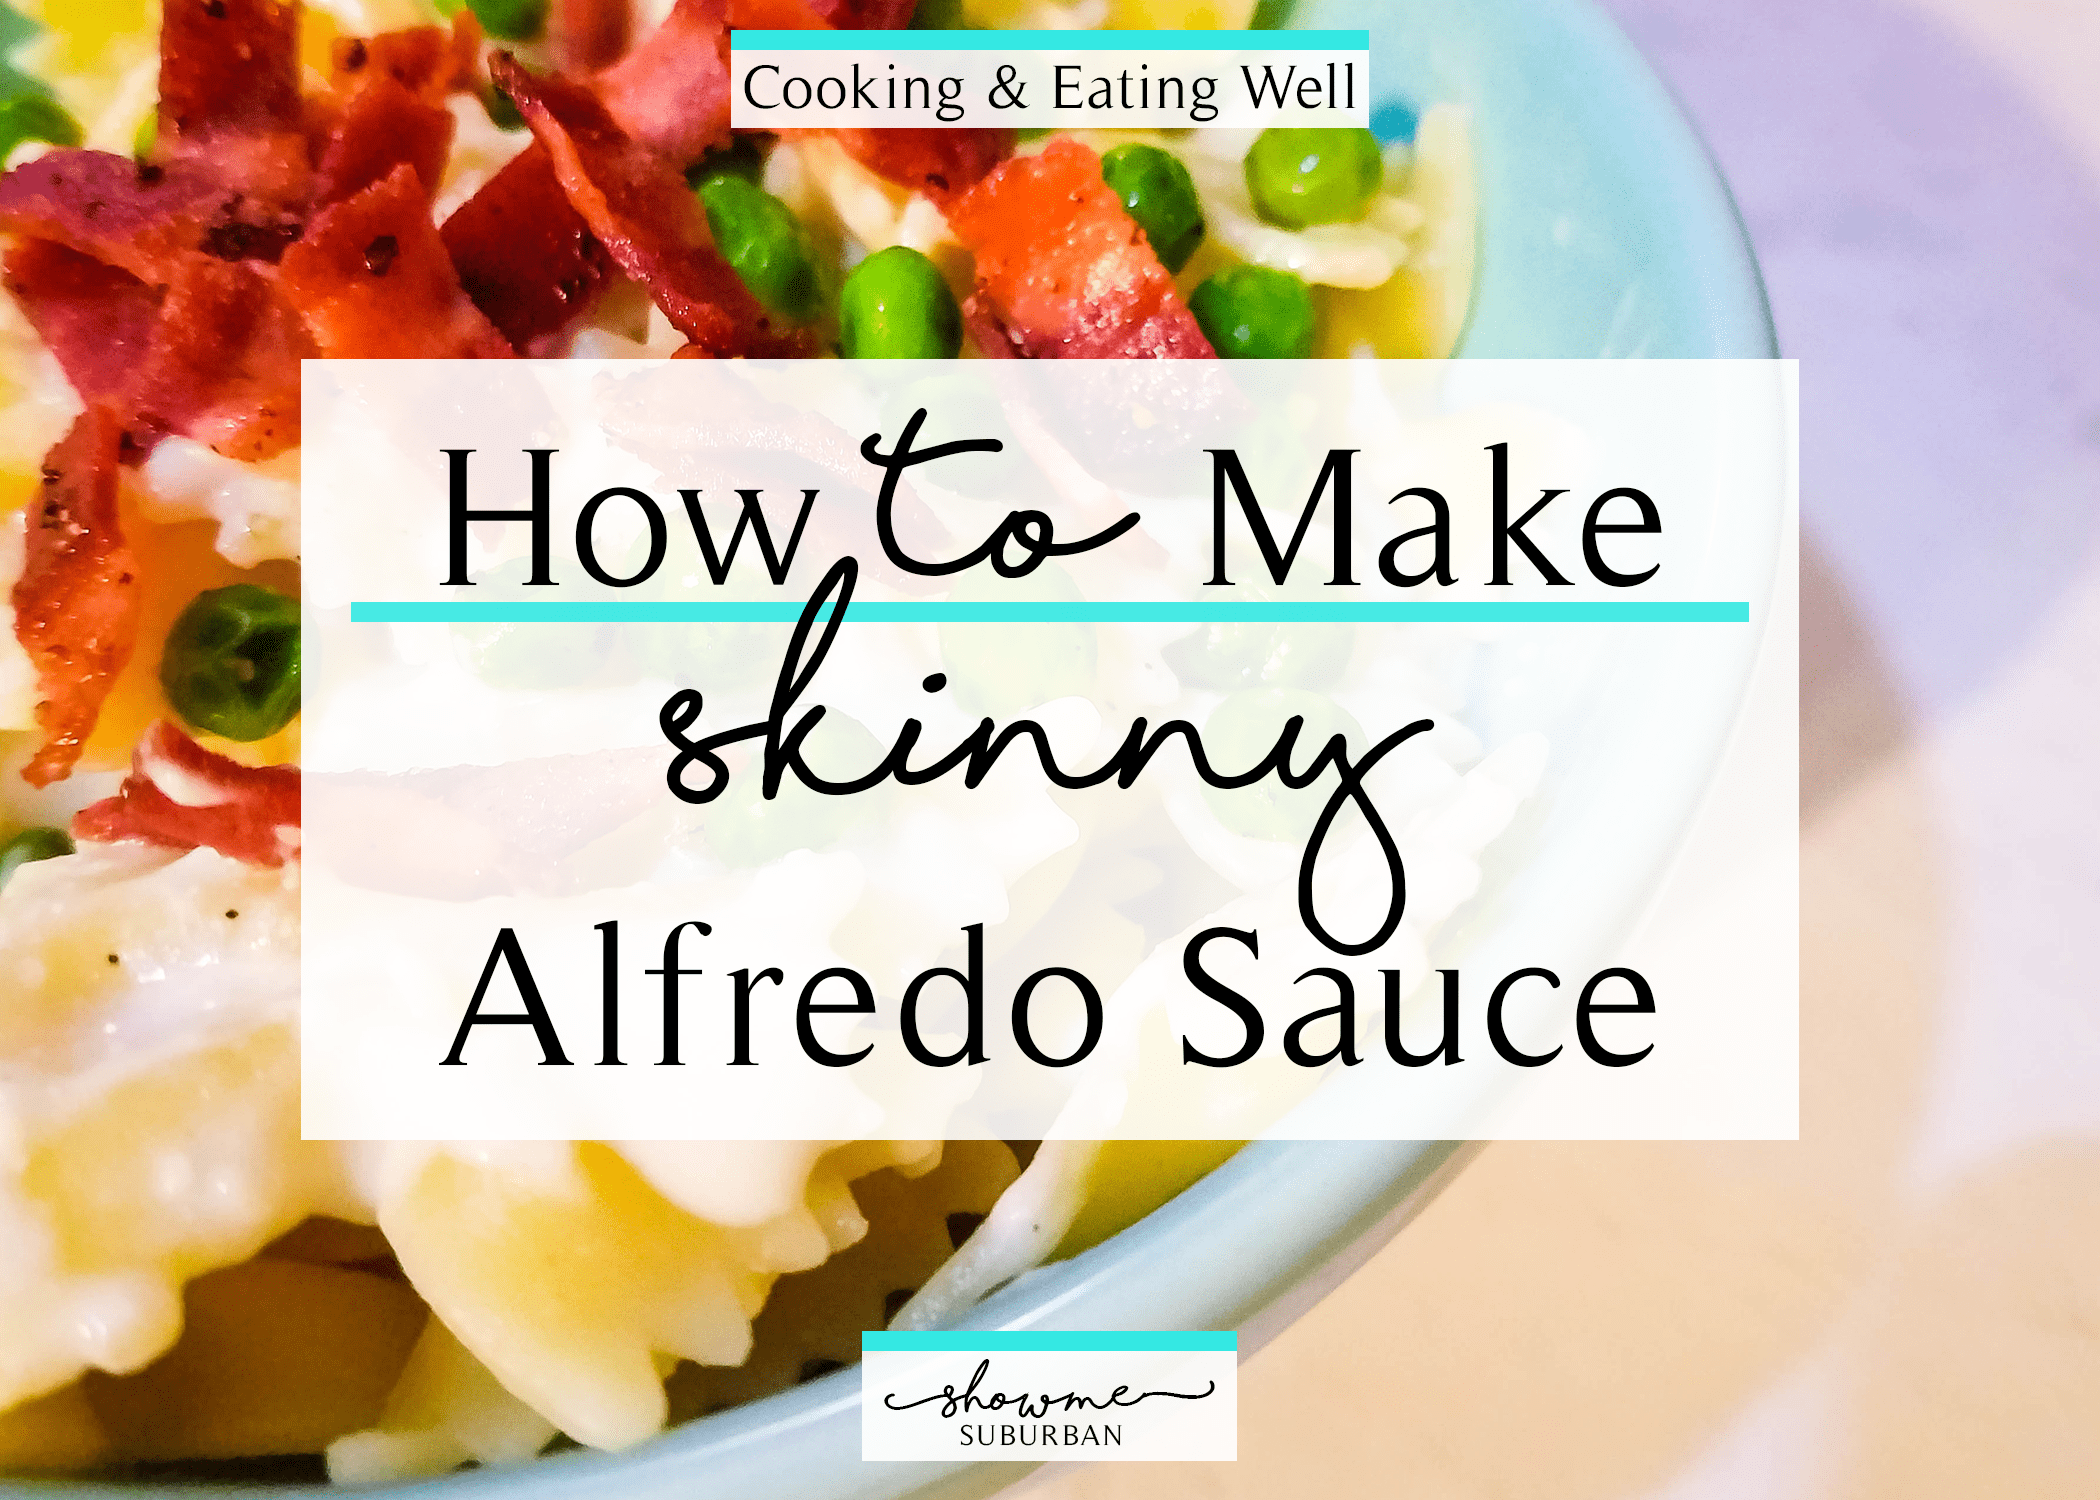 Save your diet and top your pasta with this skinny alfredo sauce! This low-calorie recipe is the perfect topper for a light and healthy dinner for two, and can be easily doubled or tripled to feed a family of 4 or more. #healthy #skinnyfood